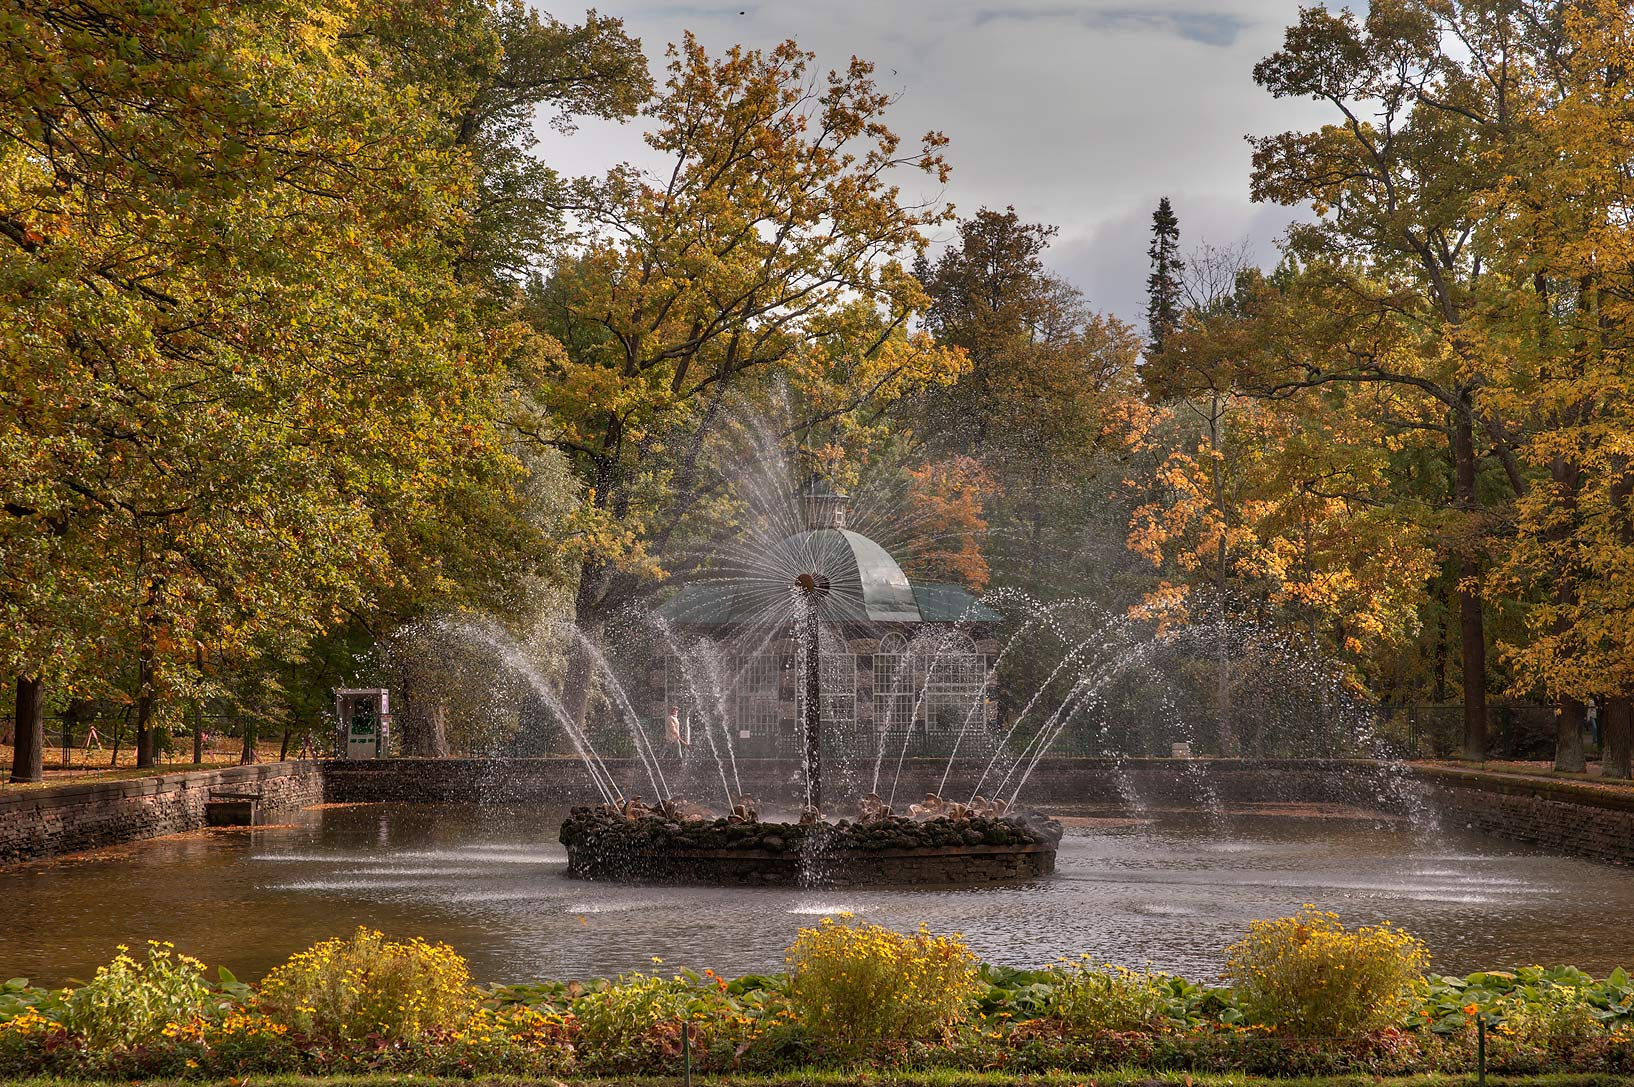 Sun Fountain in Lower Gardens. Peterhof (Petrodvorets), a suburb of St.Petersburg. Russia